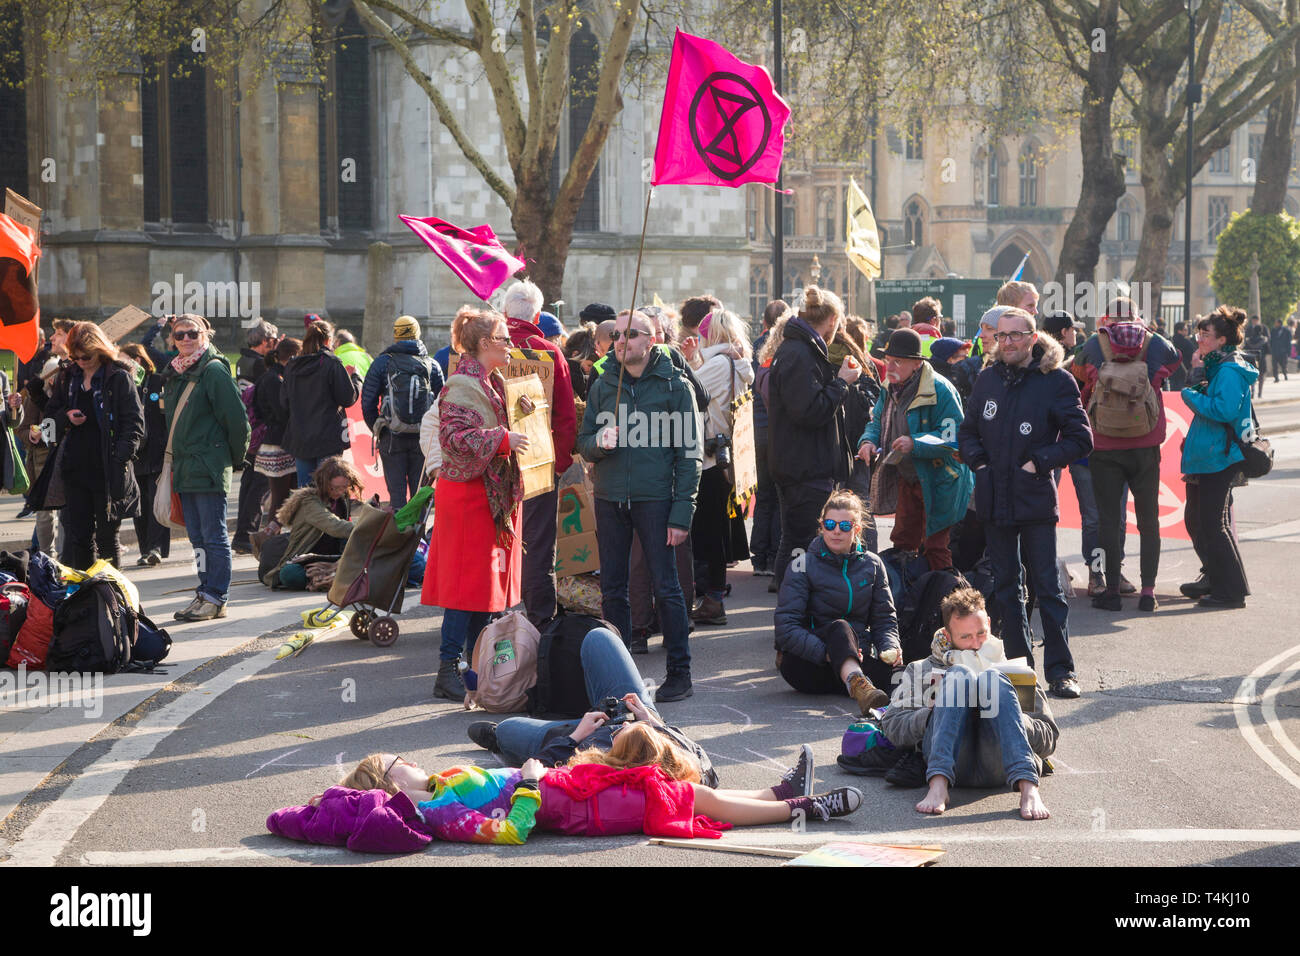 Demonstrators sit in the road blocking Victoria Street by Parliament Square, Westminster for the Extinction Rebellion demonstration Stock Photo